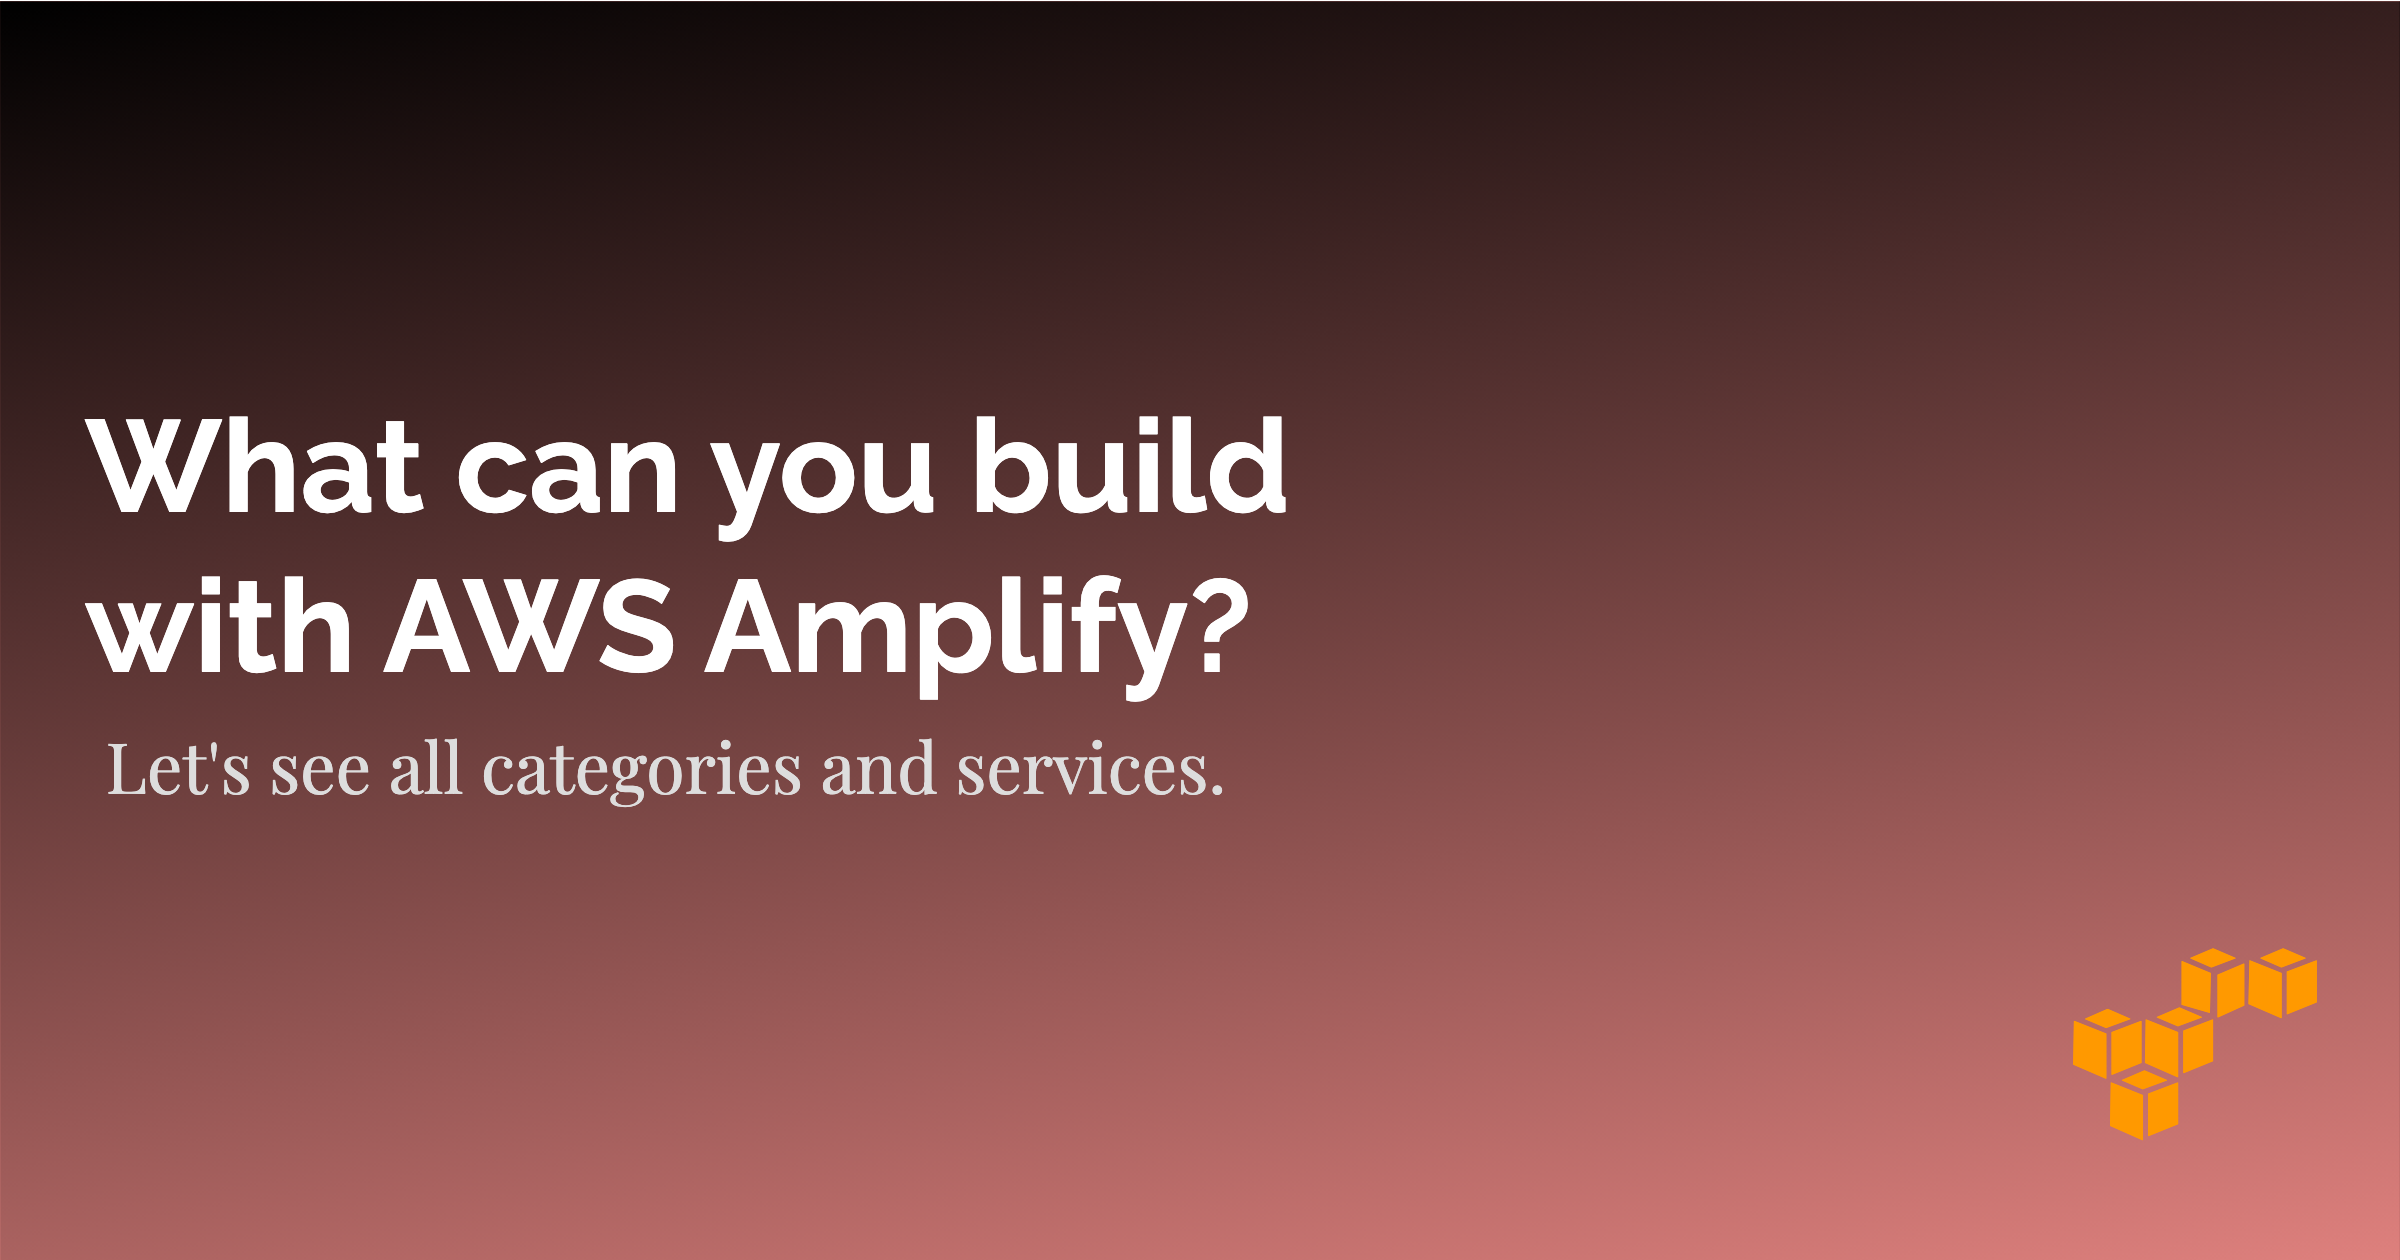 What can you build with AWS Amplify? Let's see all categories and services.